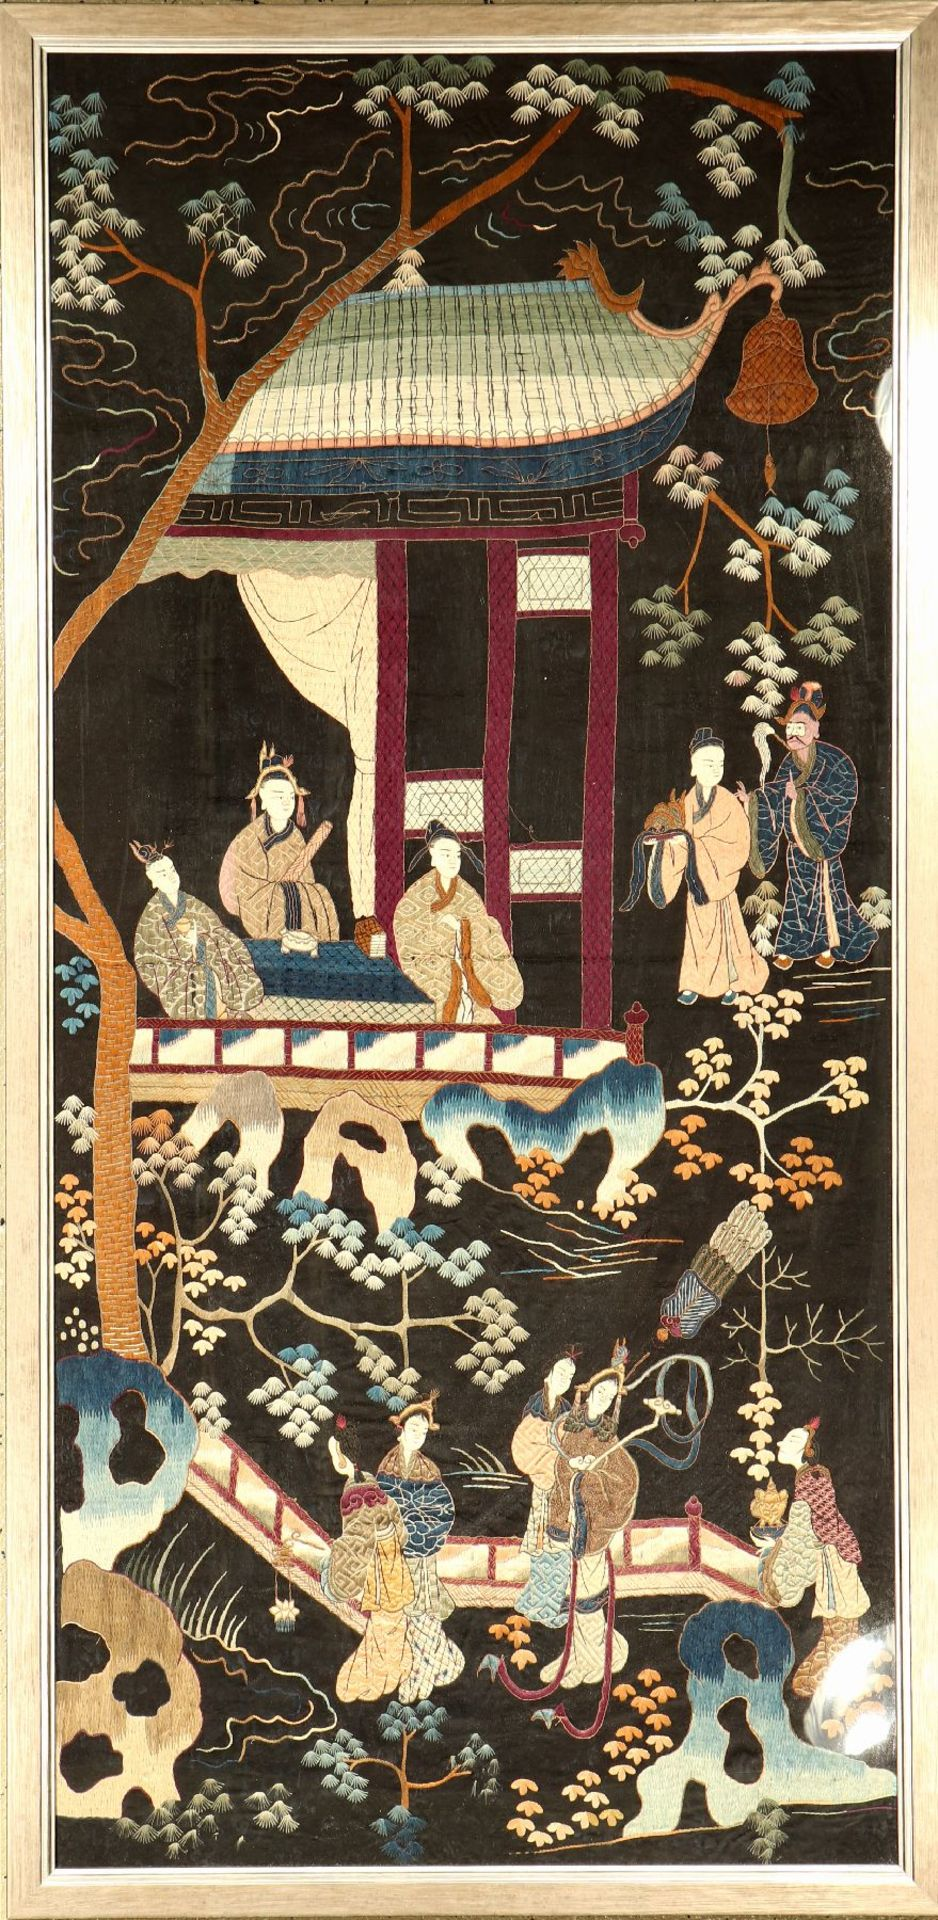 Chinese antique silk embroidery, China, 19th century, silk, approx. 162 x 80 cm, condition:2.